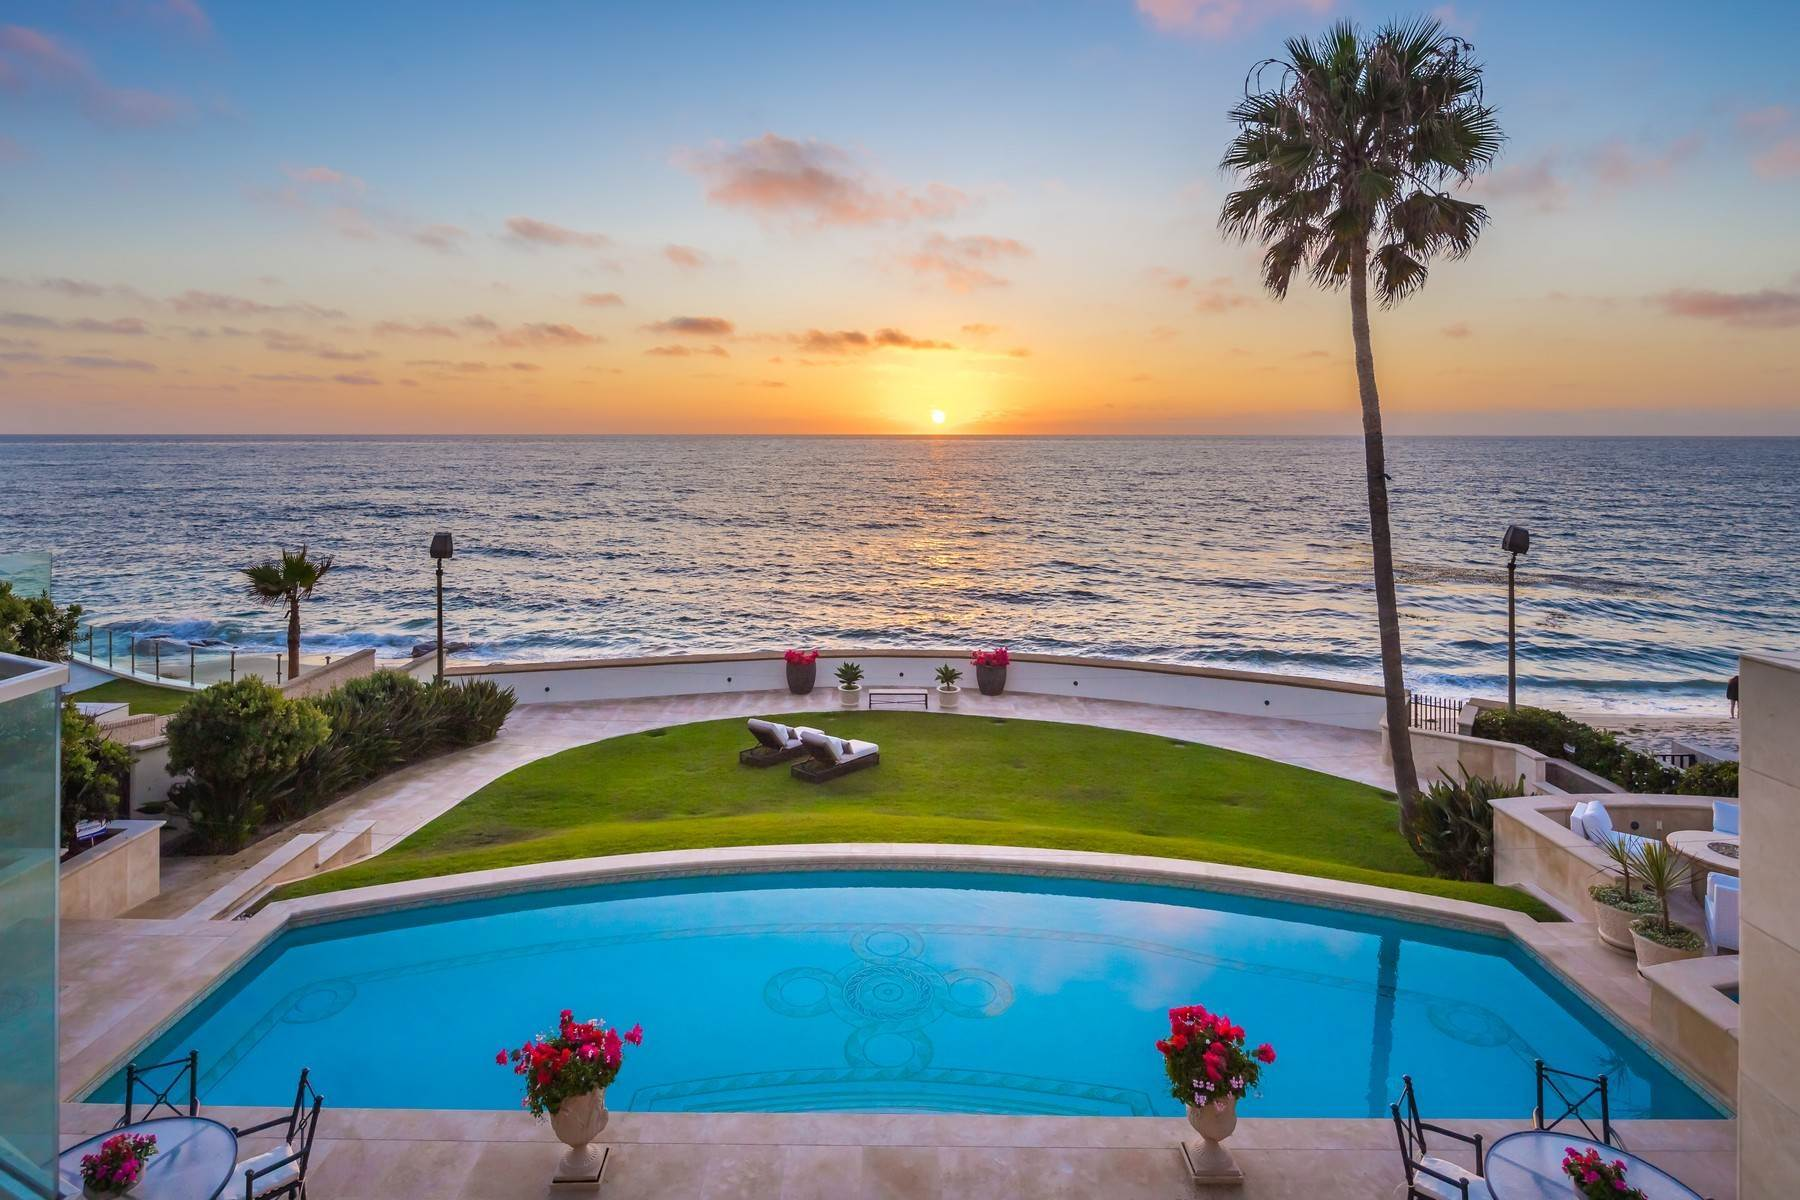 Single Family Homes for Sale at 308 Vista De La Playa La Jolla, California 92037 United States